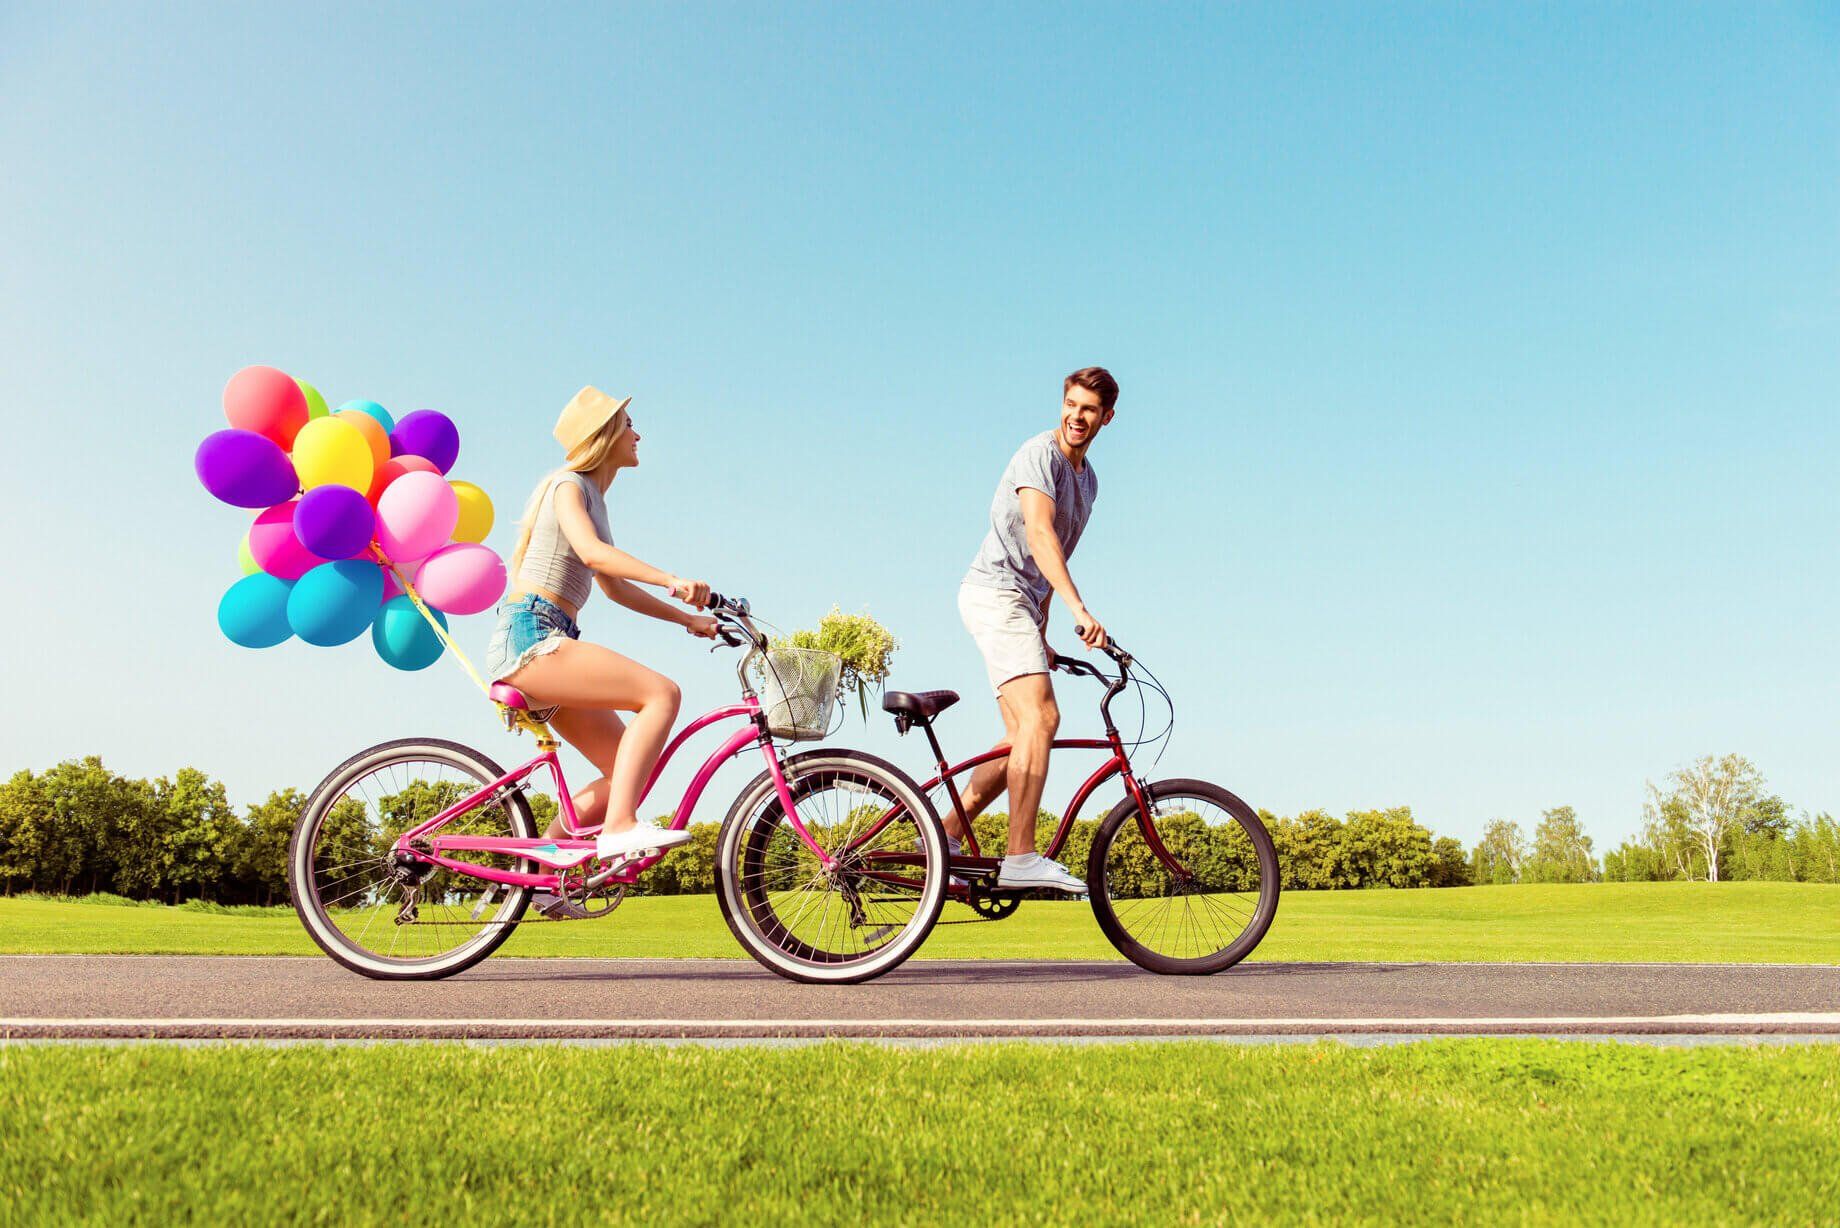 Couple on bikes with colourful balloons